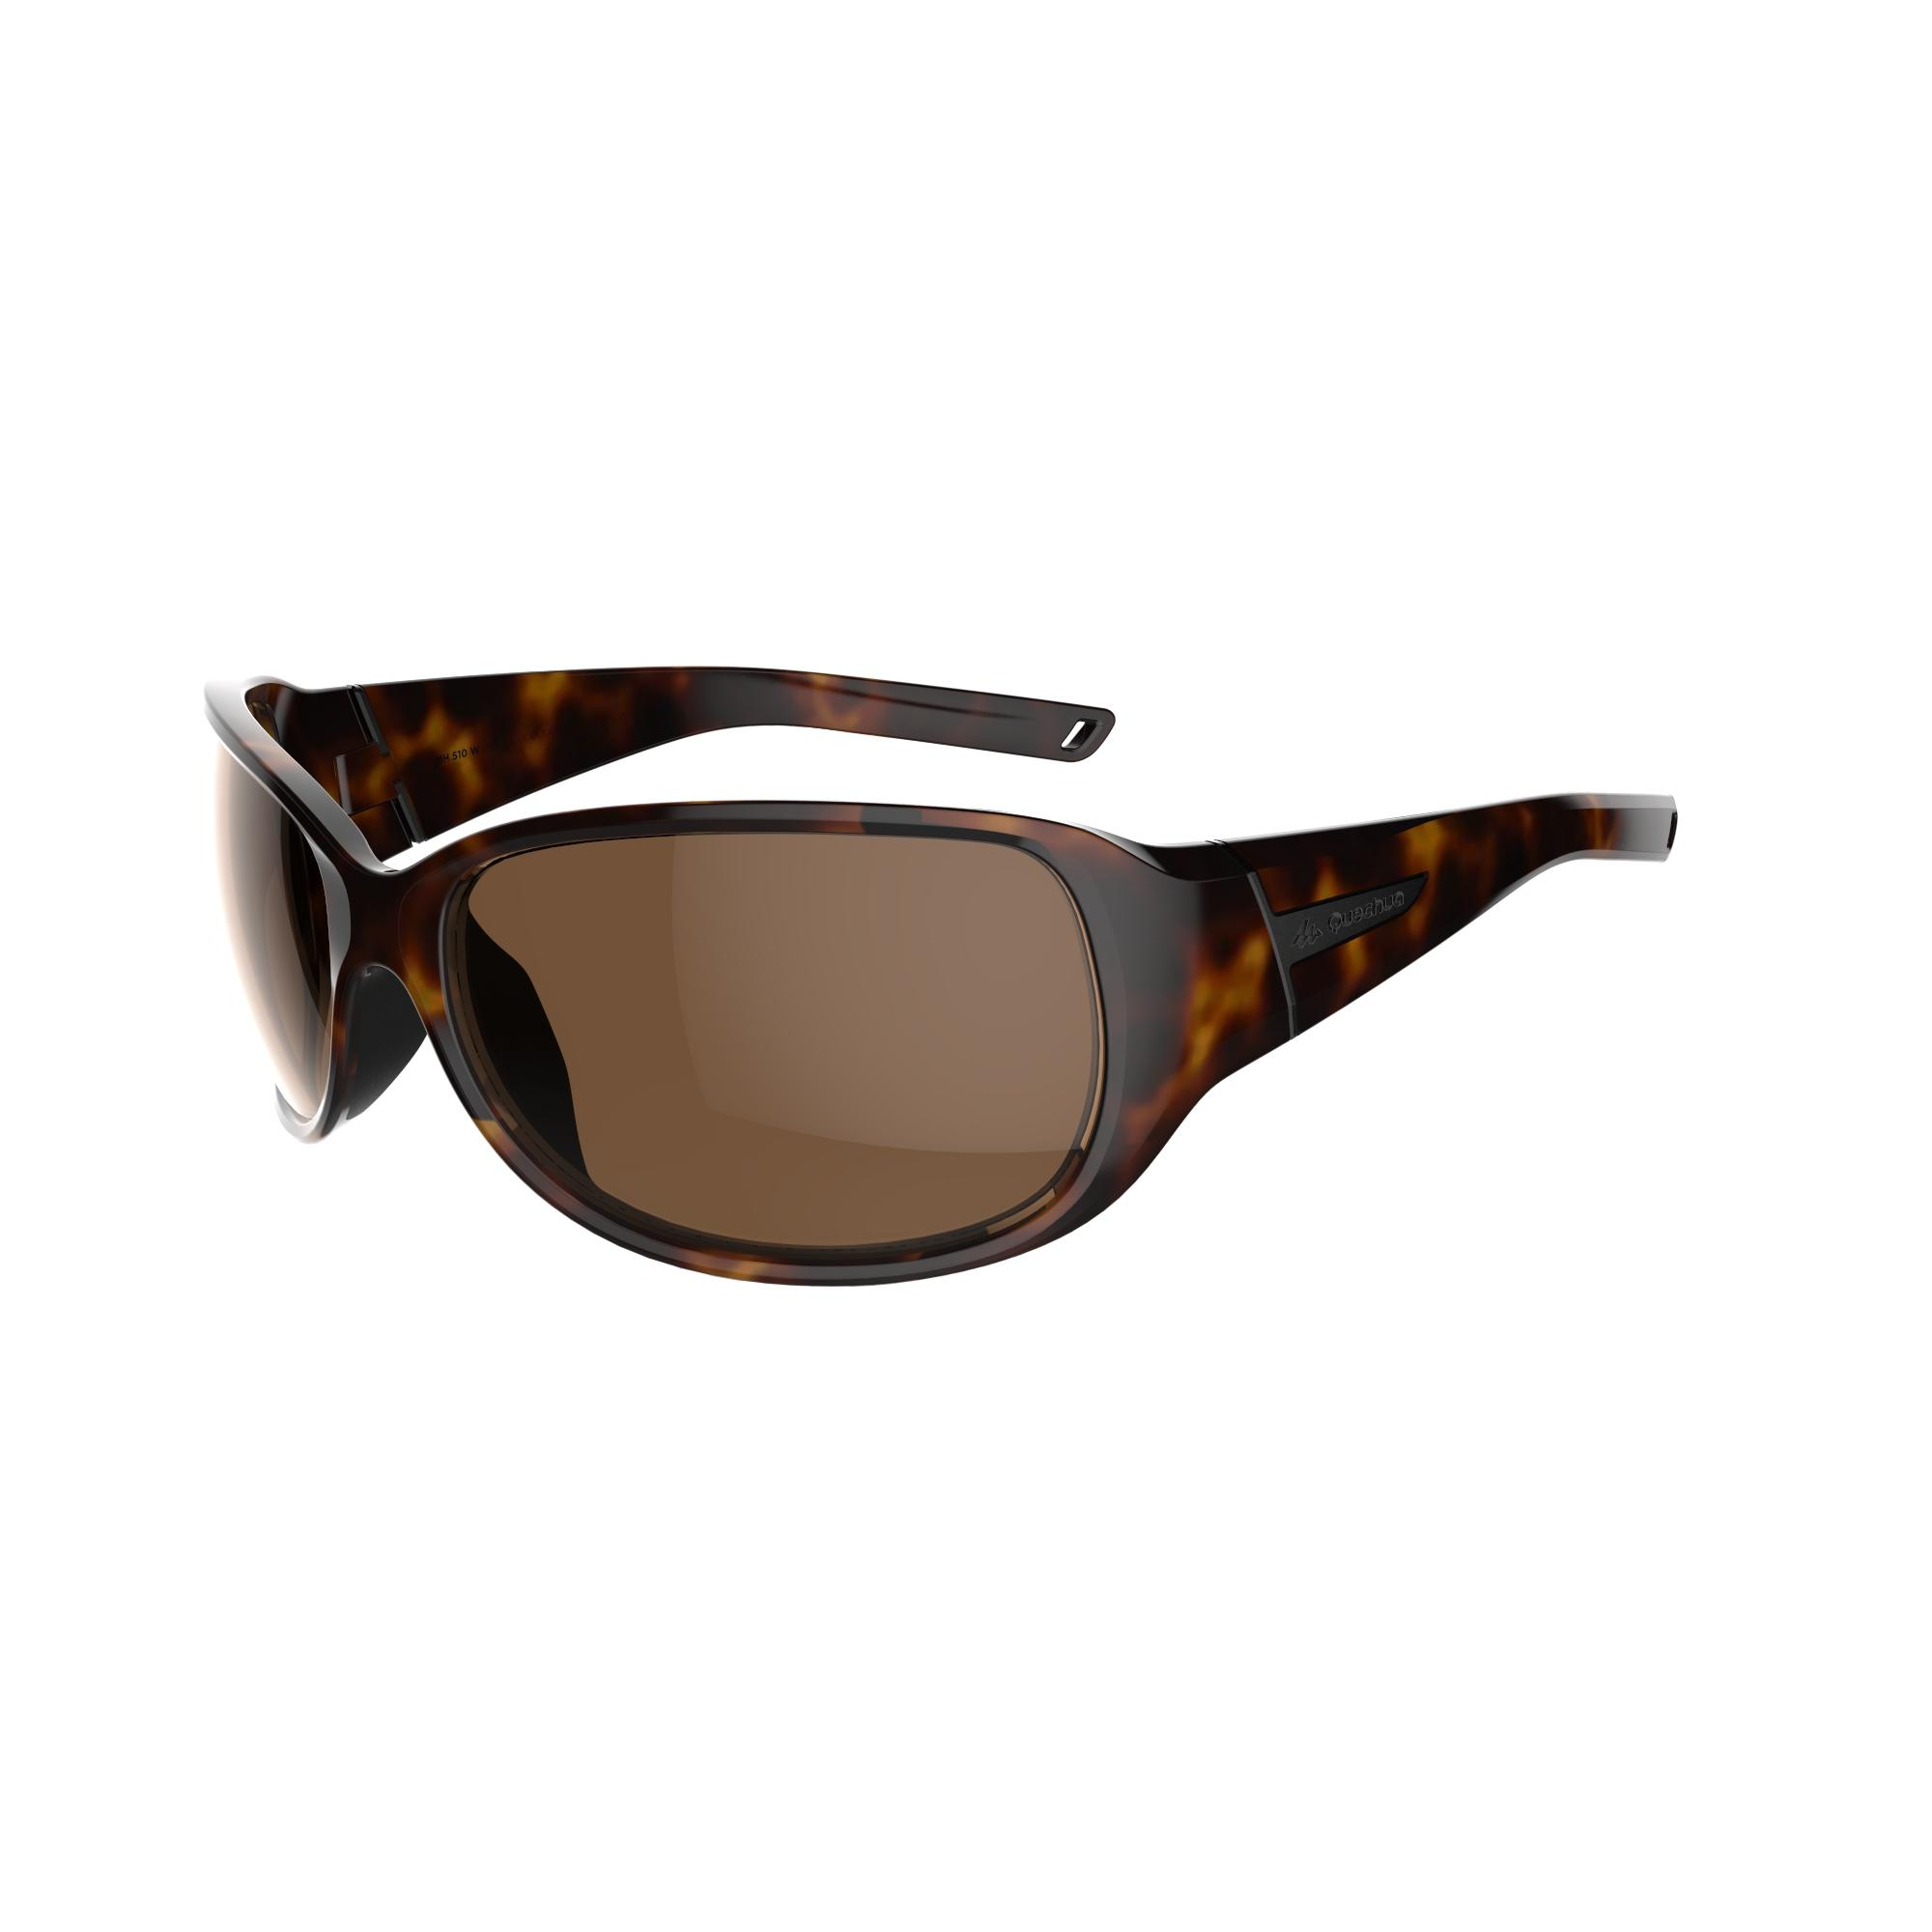 MH550 Women's Category 3 Polarising Hiking Sunglasses - Brown Scales